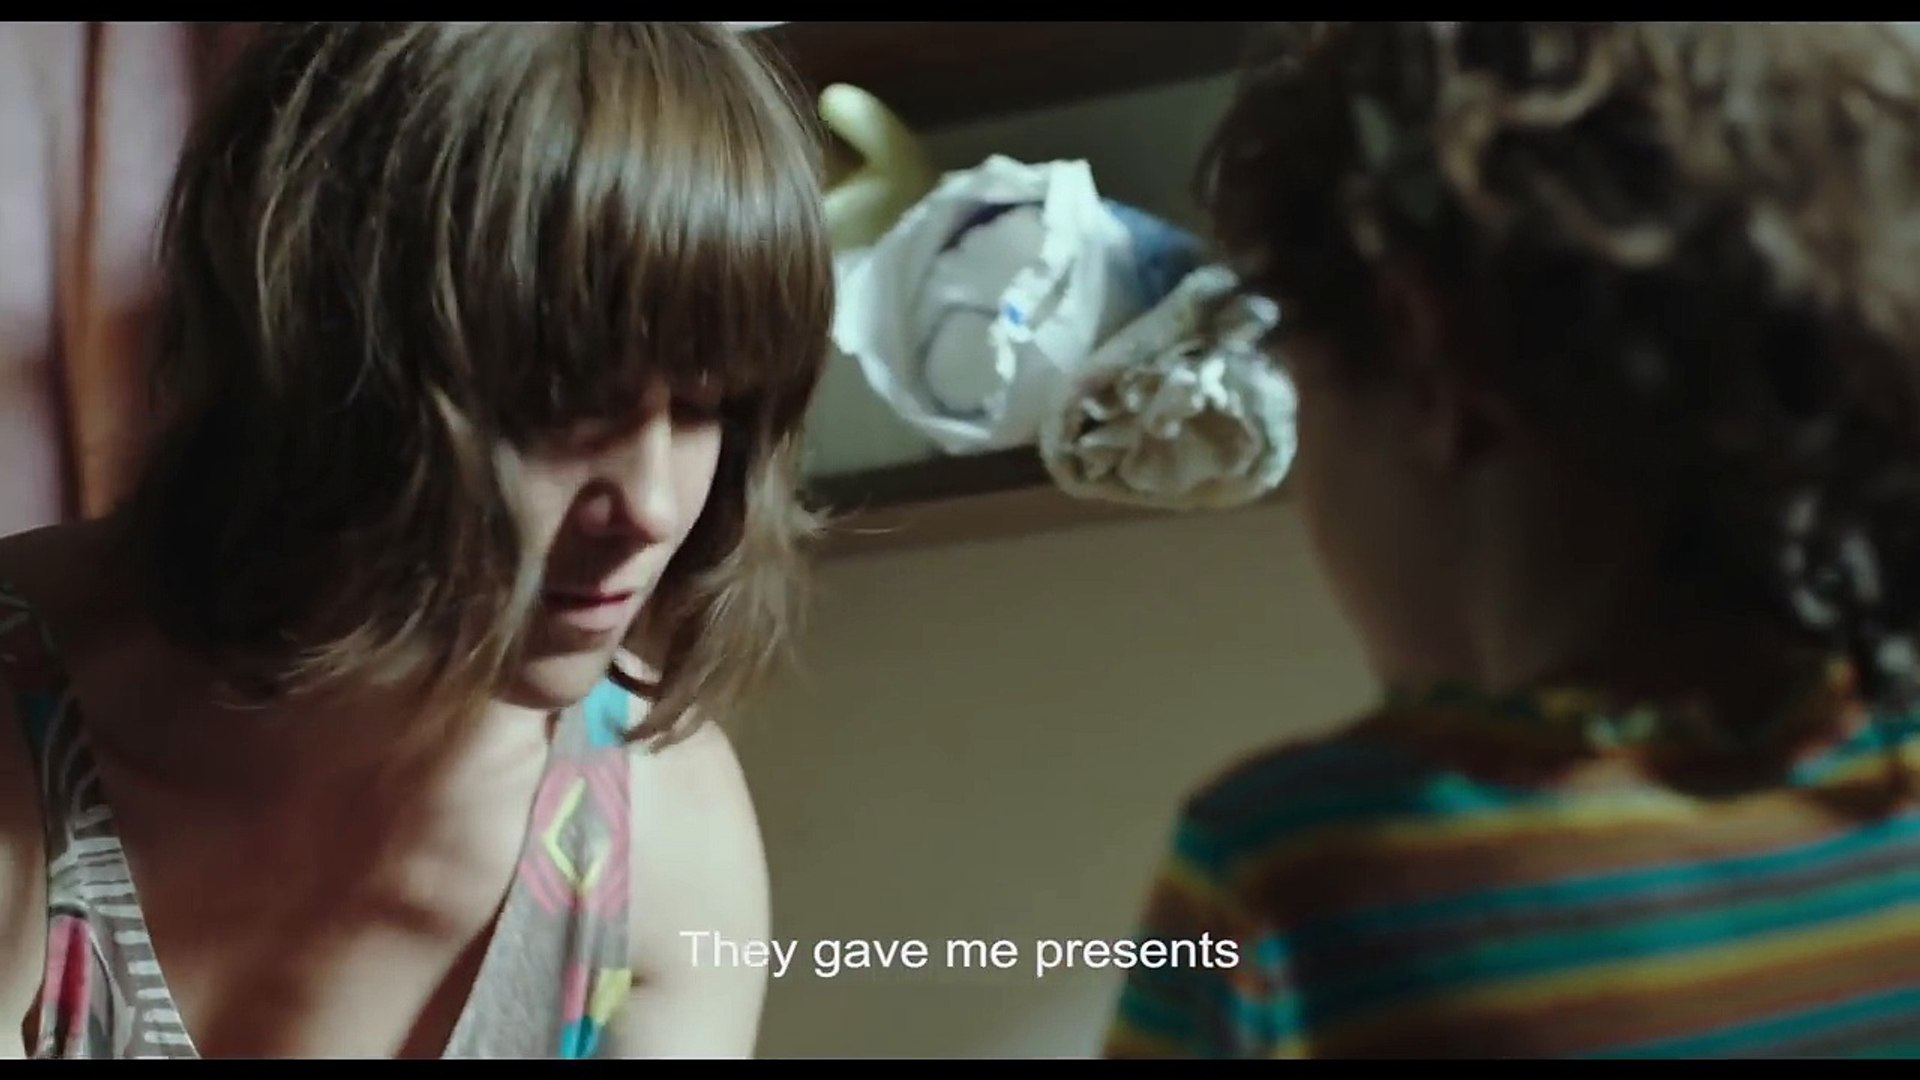 Summer 1993 / Estiu 1993 by Carla Simon - Berlinale Generation - Trailer